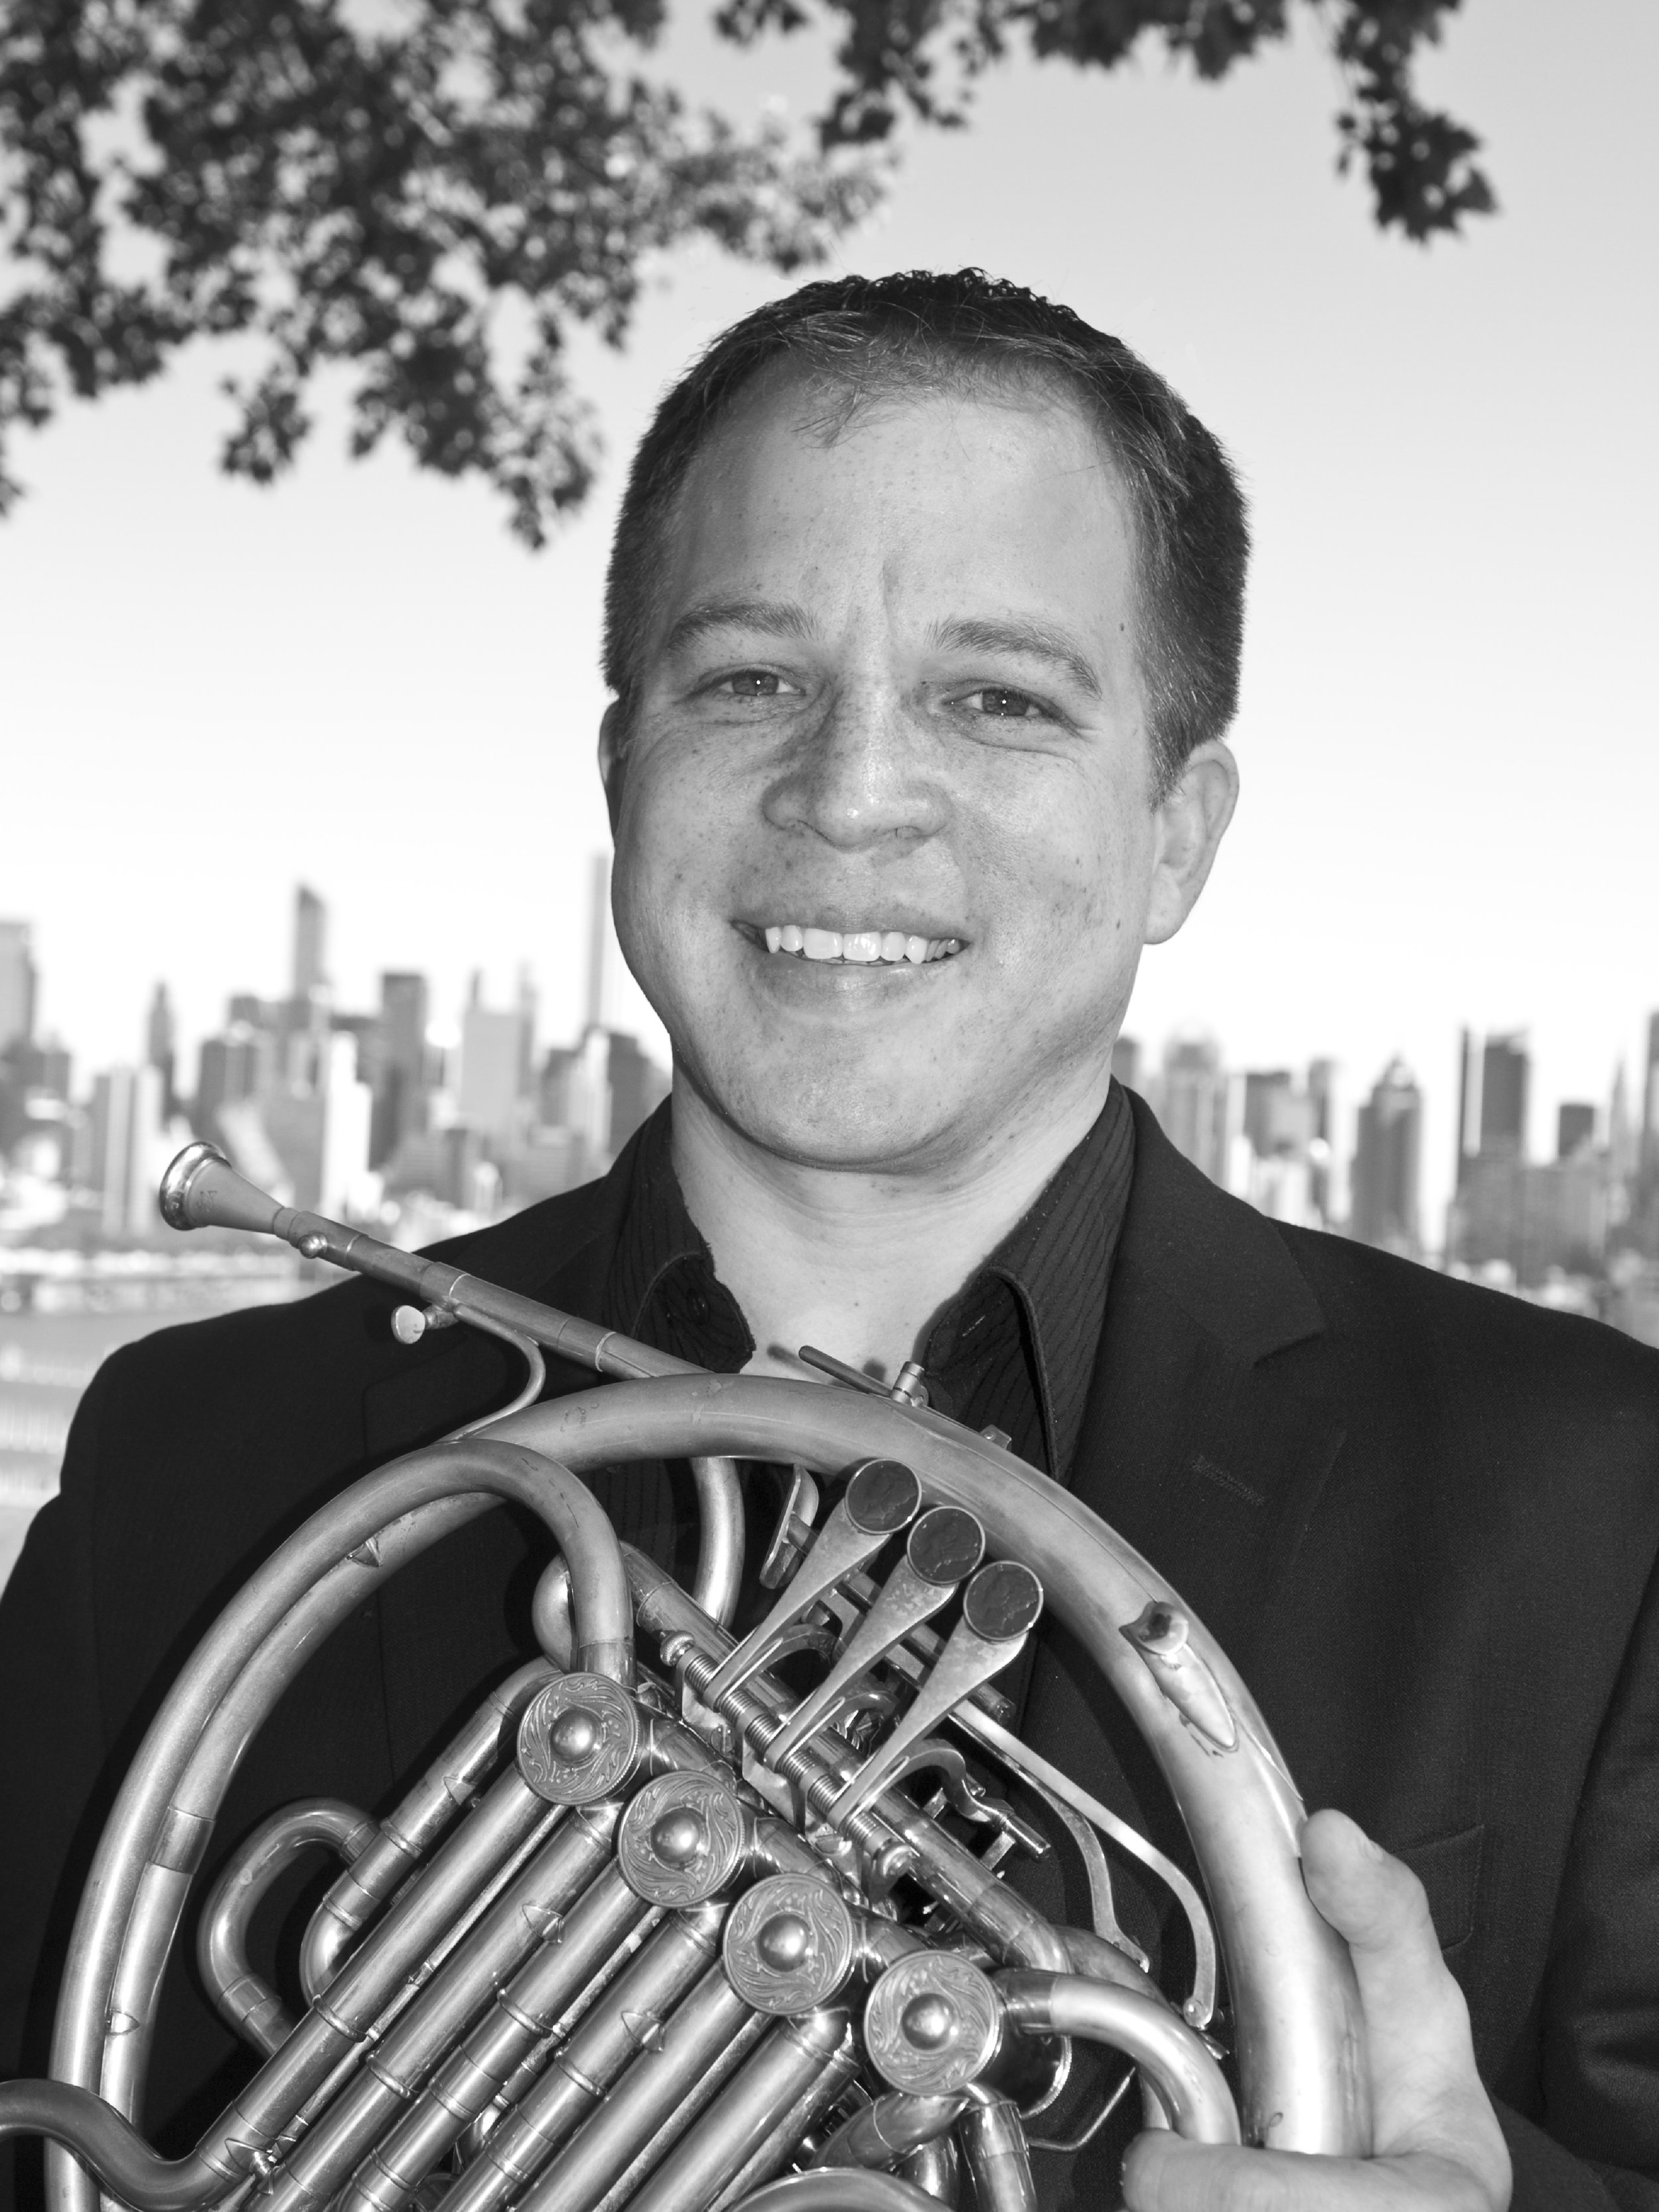 Kyle Hoyt - French HornKyle Hoyt is an active French Horn player and teacher in the NYC metropolitan area and beyond. Kyle can be heard frequently playing with the American, New Haven Symphony Orchestras, Orchestra of St. Lukes, St. Paul Chamber Orchestra, and the Knights Chamber Orchestra. He performs regularly at the Bard Music Festival Orchestral and Chamber Music Programs. Previously he was Associate Principal horn of the Jerusalem Symphony Orchestra, and held full time positions with the Columbus and Syracuse Symphony Orchestras. He recently recorded with Yo-Yo Ma and the Knights.Kyle was a member of the Broadway pit orchestras of Something Rotten, Sideshow, and the Radio City Christmas SpectacularOrchestra. Kyle has also recorded for Naxos, Telarc, Nimbus Records, CBS, and NFL Films.He currently serves as French Horn Faculty at Montclair State University in Montclair, New Jersey. He has given masterclasses at the University of Michigan, the Ohio State University, Bowling Green State University, and the University of Kansas.He studied at the University of Michigan and Manhattan School of Music. His principal teachers were Bryan Kennedy, Soren Hermansson, Erik Ralske, and Jeffrey Lang.